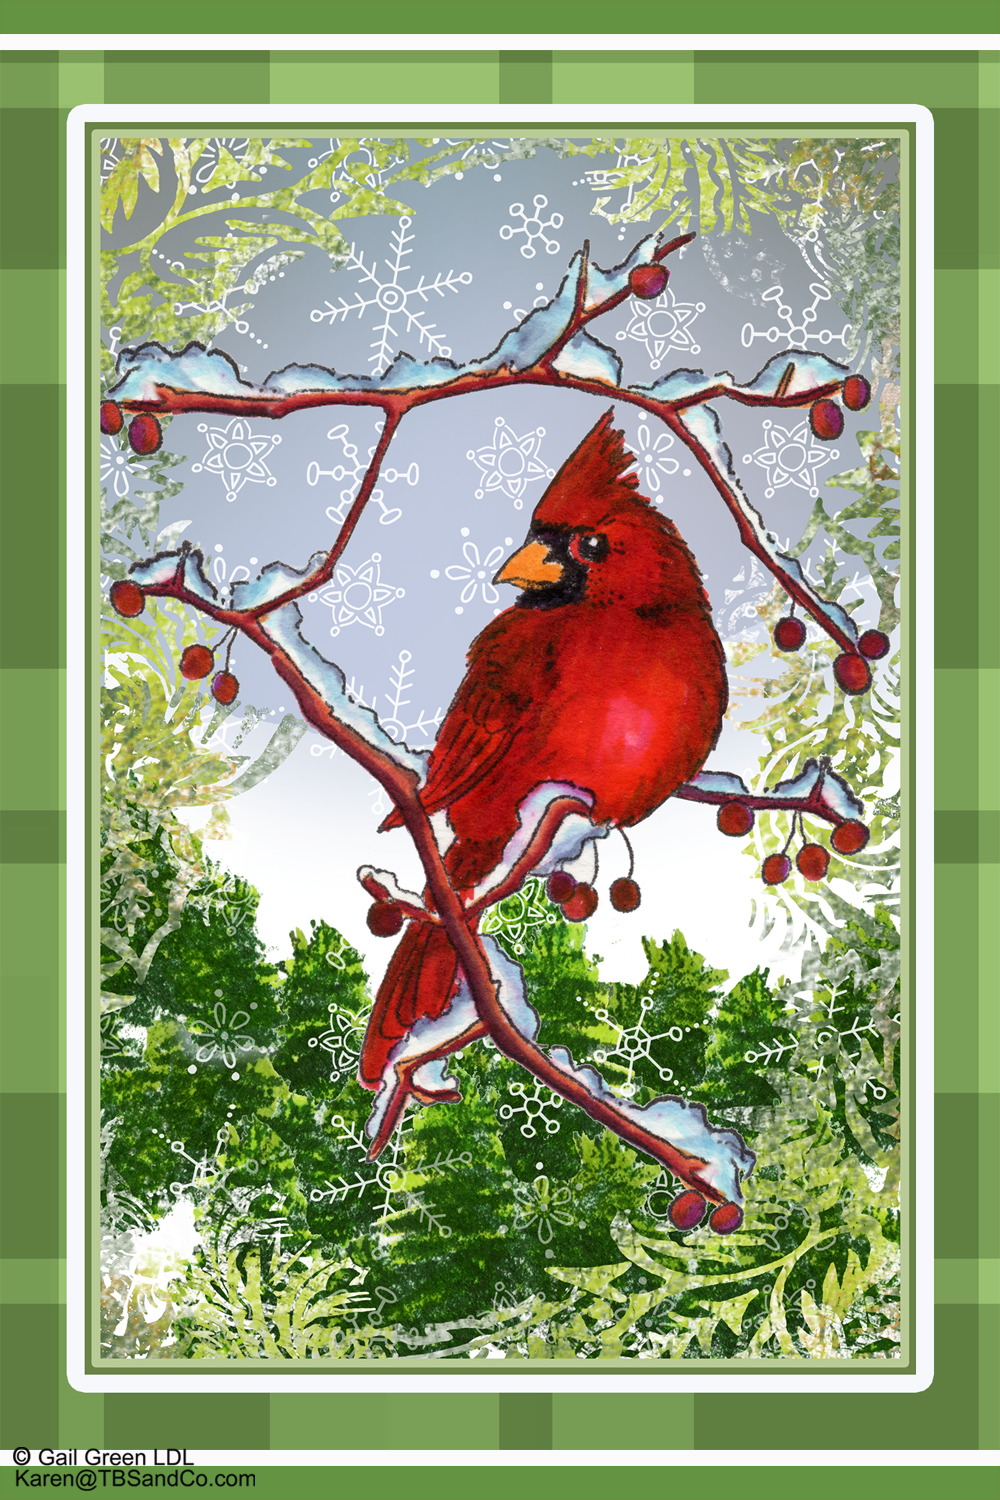 GG_WinterStationery_38-Cardinal.jpg